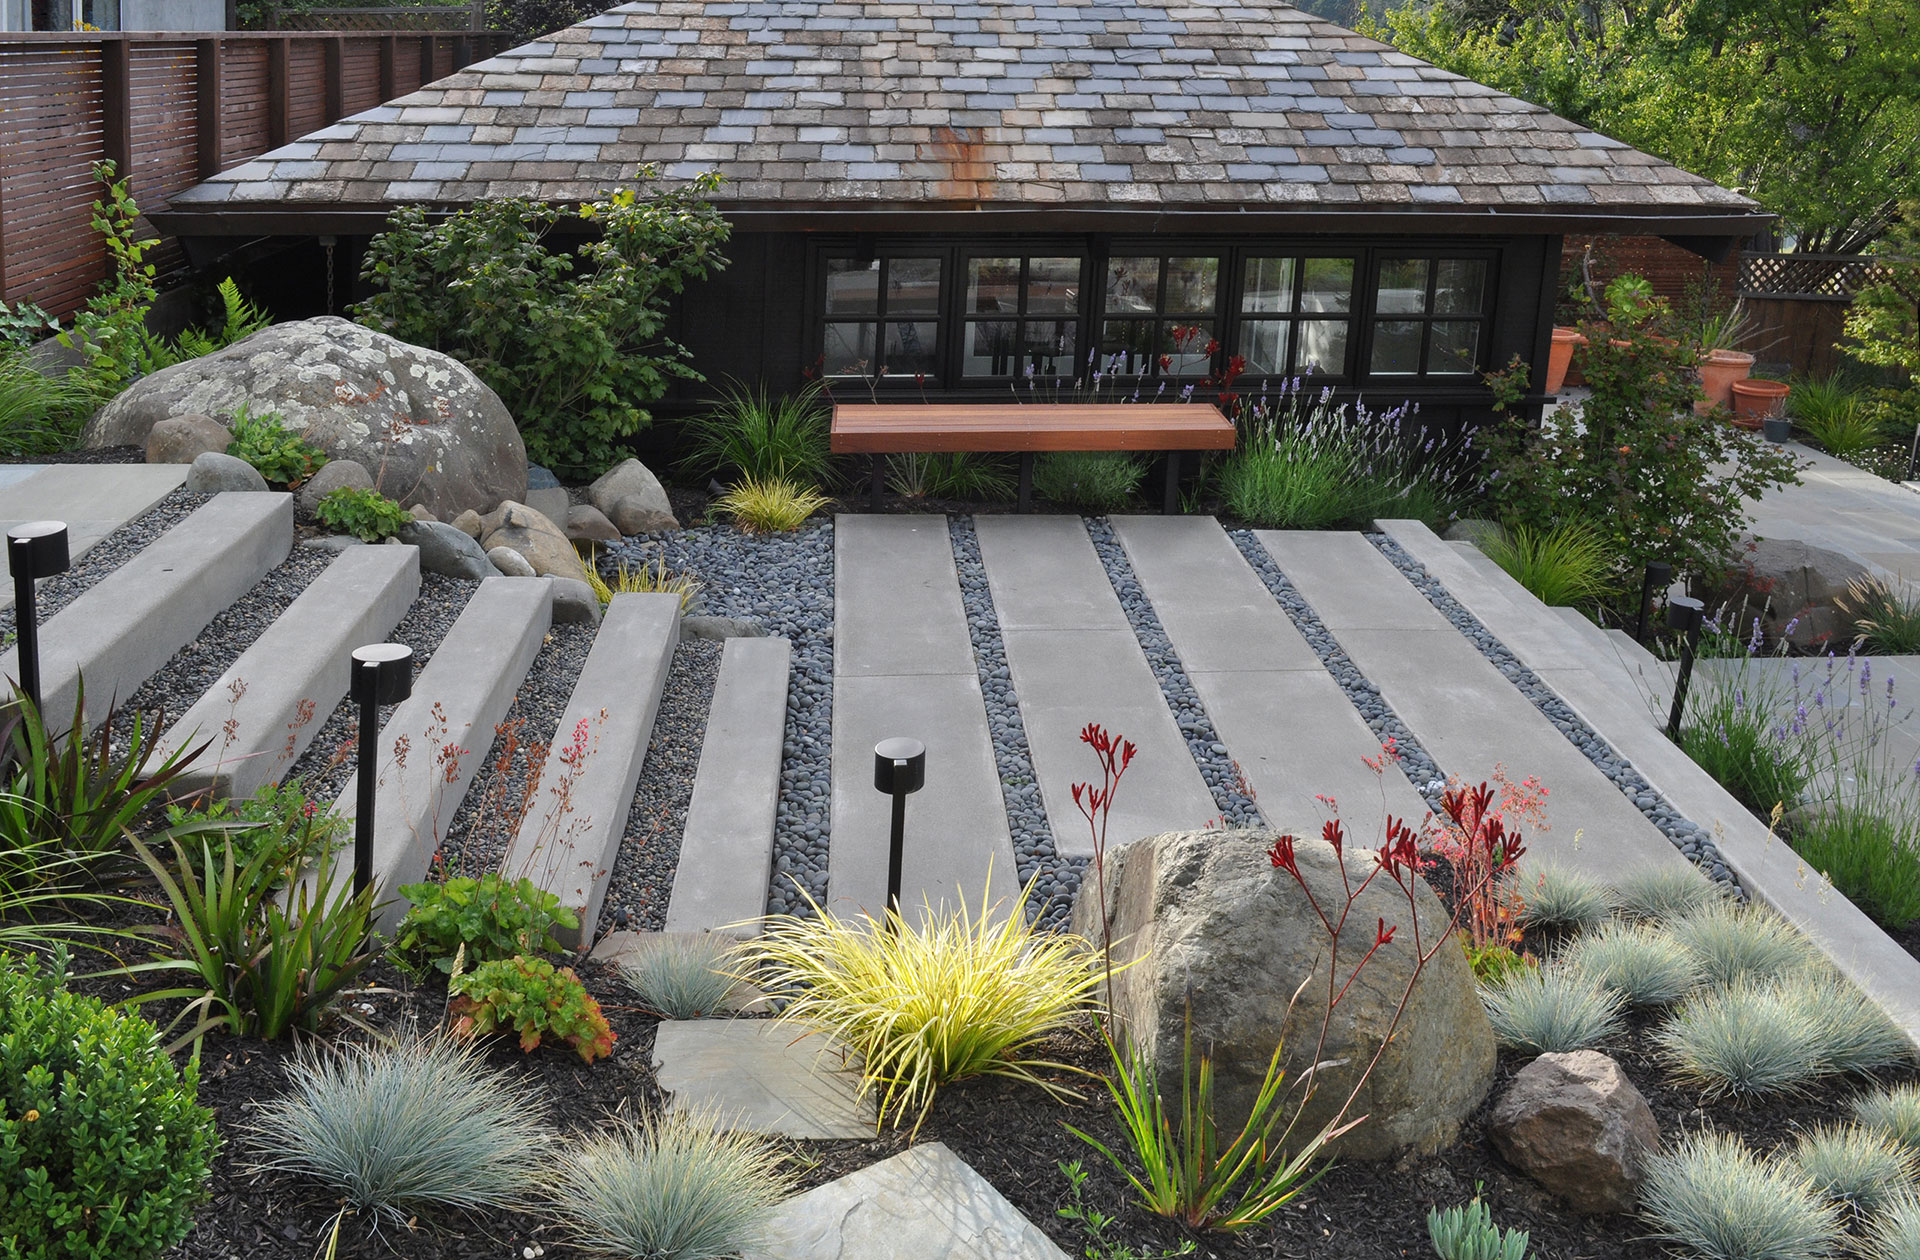 Mill valley huetll landscape architecture for Garden design mill valley